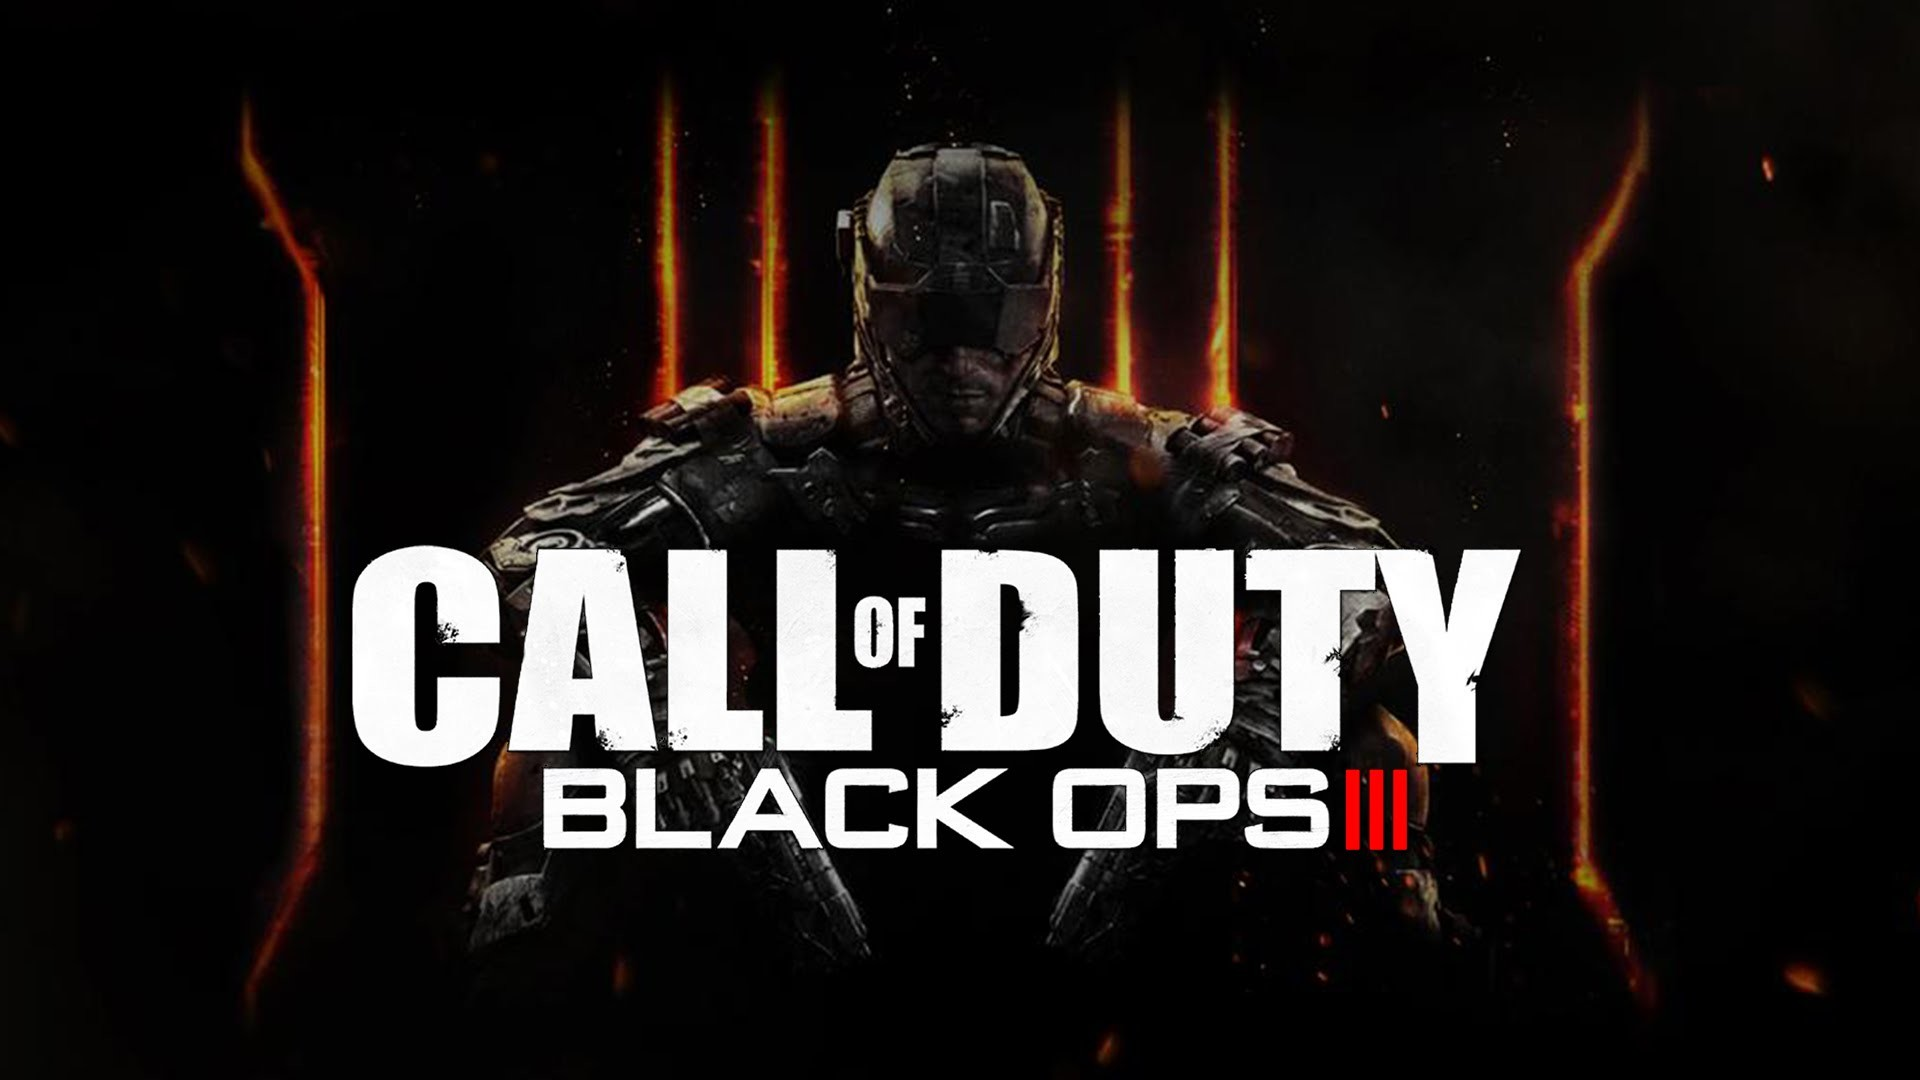 Black Ops 3 Wallpaper Posted By Christopher Cunningham